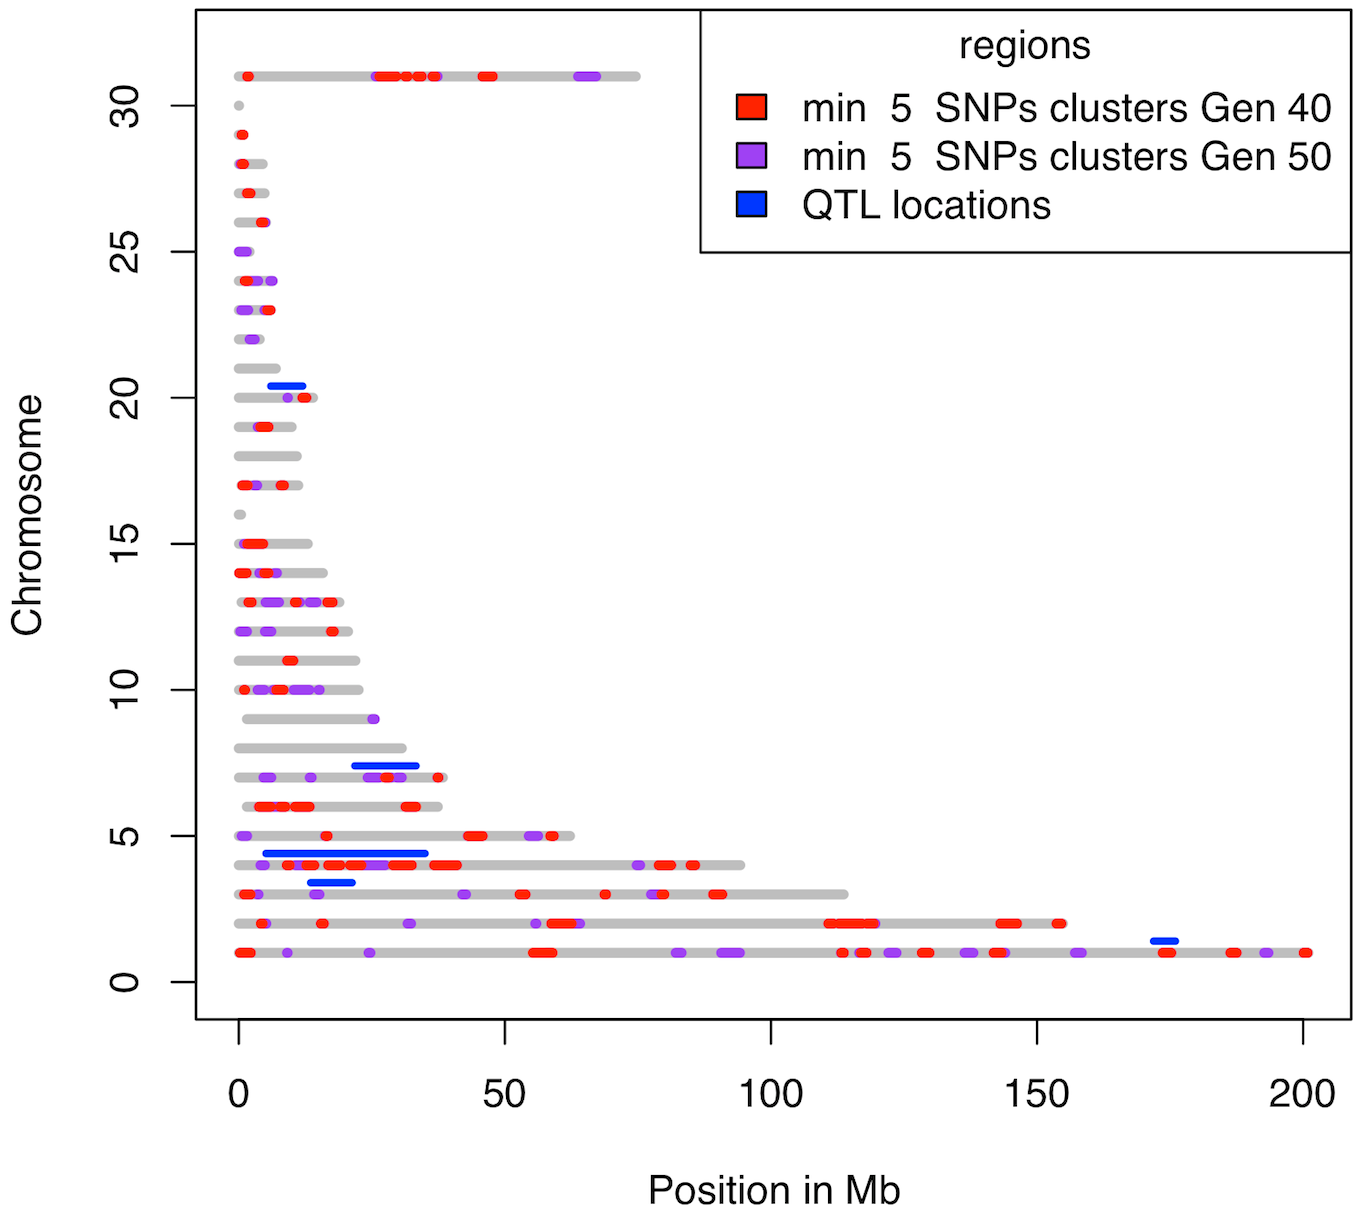 Clusters with at least 5 SNPs fixed for different alleles in the two lines.